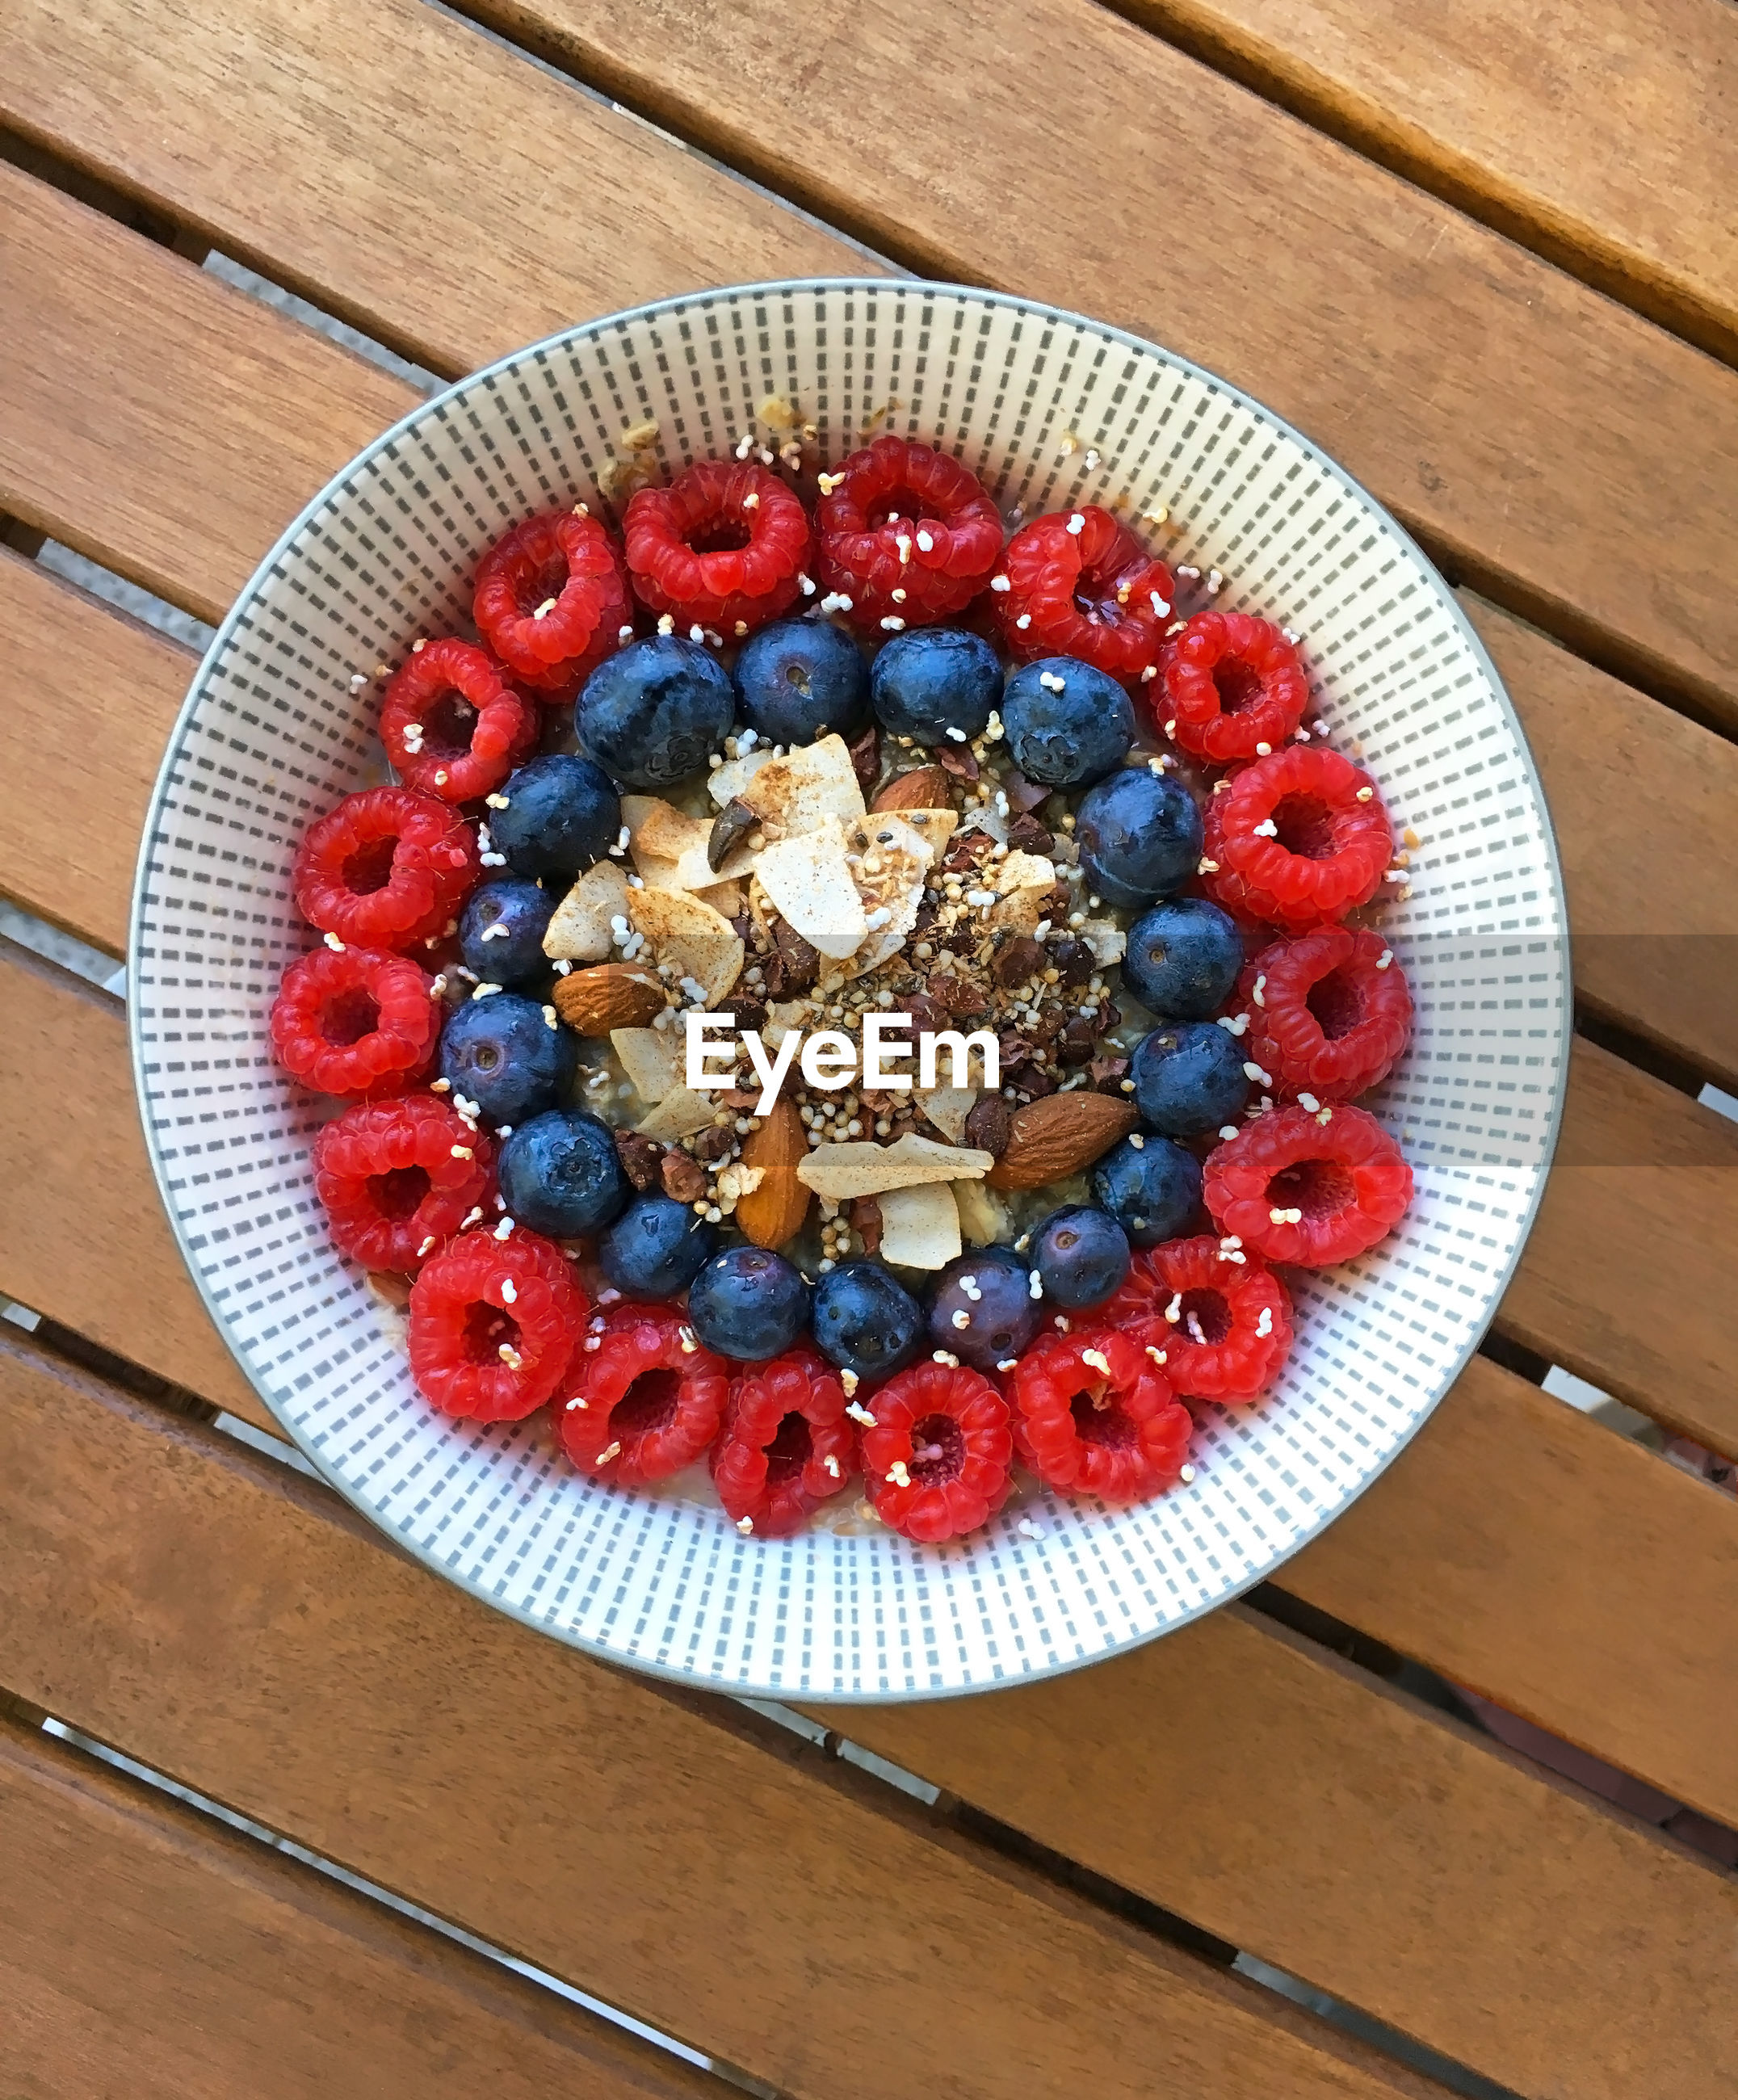 food, food and drink, berry fruit, fruit, blueberry, healthy eating, wellbeing, breakfast, wood - material, directly above, bowl, freshness, table, indoors, breakfast cereal, granola, meal, no people, raspberry, still life